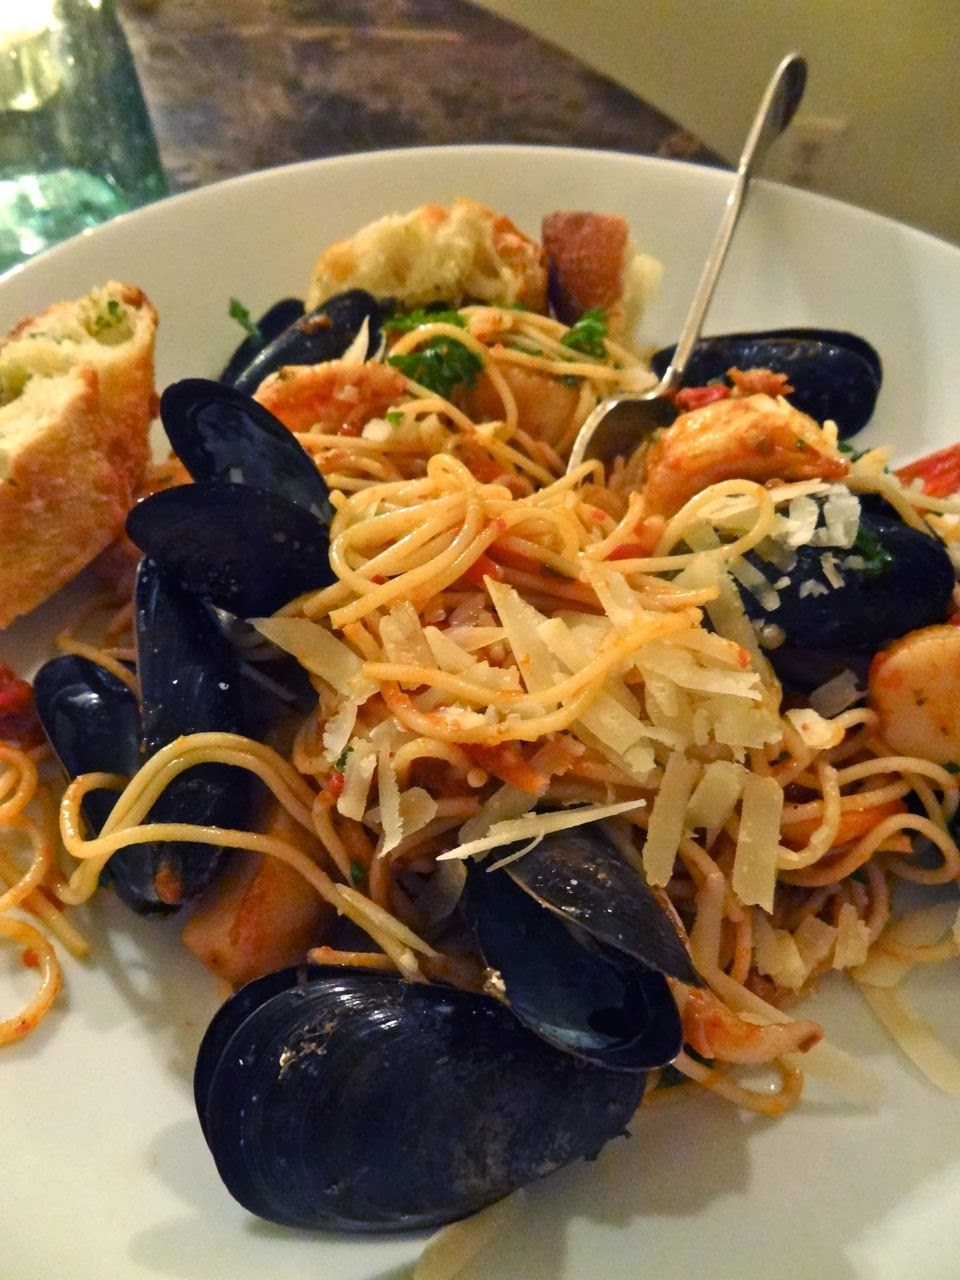 ... : Seafood Pasta with Mussels, Scallops, Shrimp & Squid